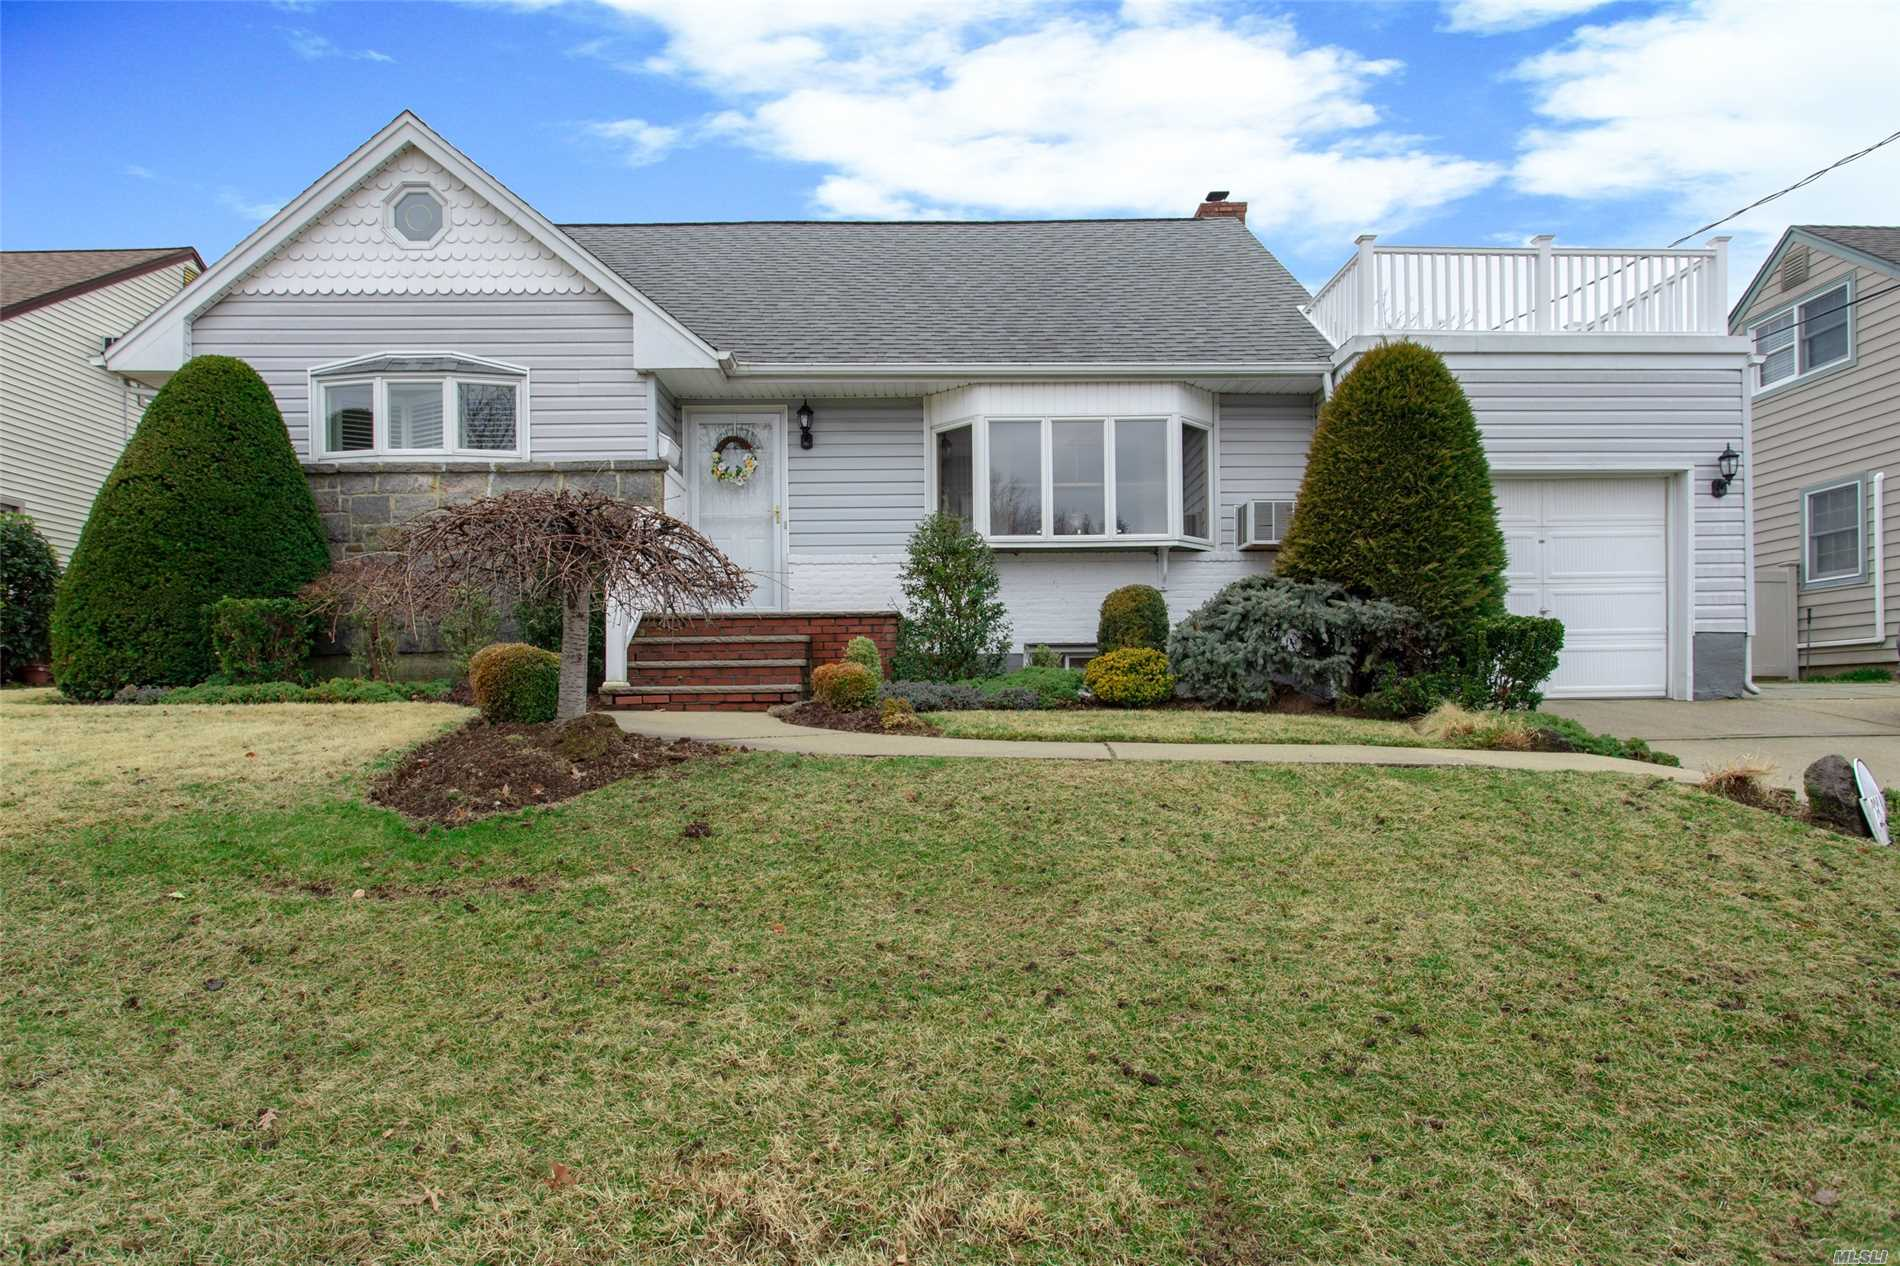 Meticulously maintained Cape in Oceanside S.D. Living Room with Gas Fireplace, Updated Kitchen w/ss appliances, Formal Dining Room, Den with Gas Fireplace, 4 Bedroom, 2 Full Baths, Hardwood Floors Throughout. Finished Basement, Beautiful backyard with in-ground pool. Fantastic for entertaining.